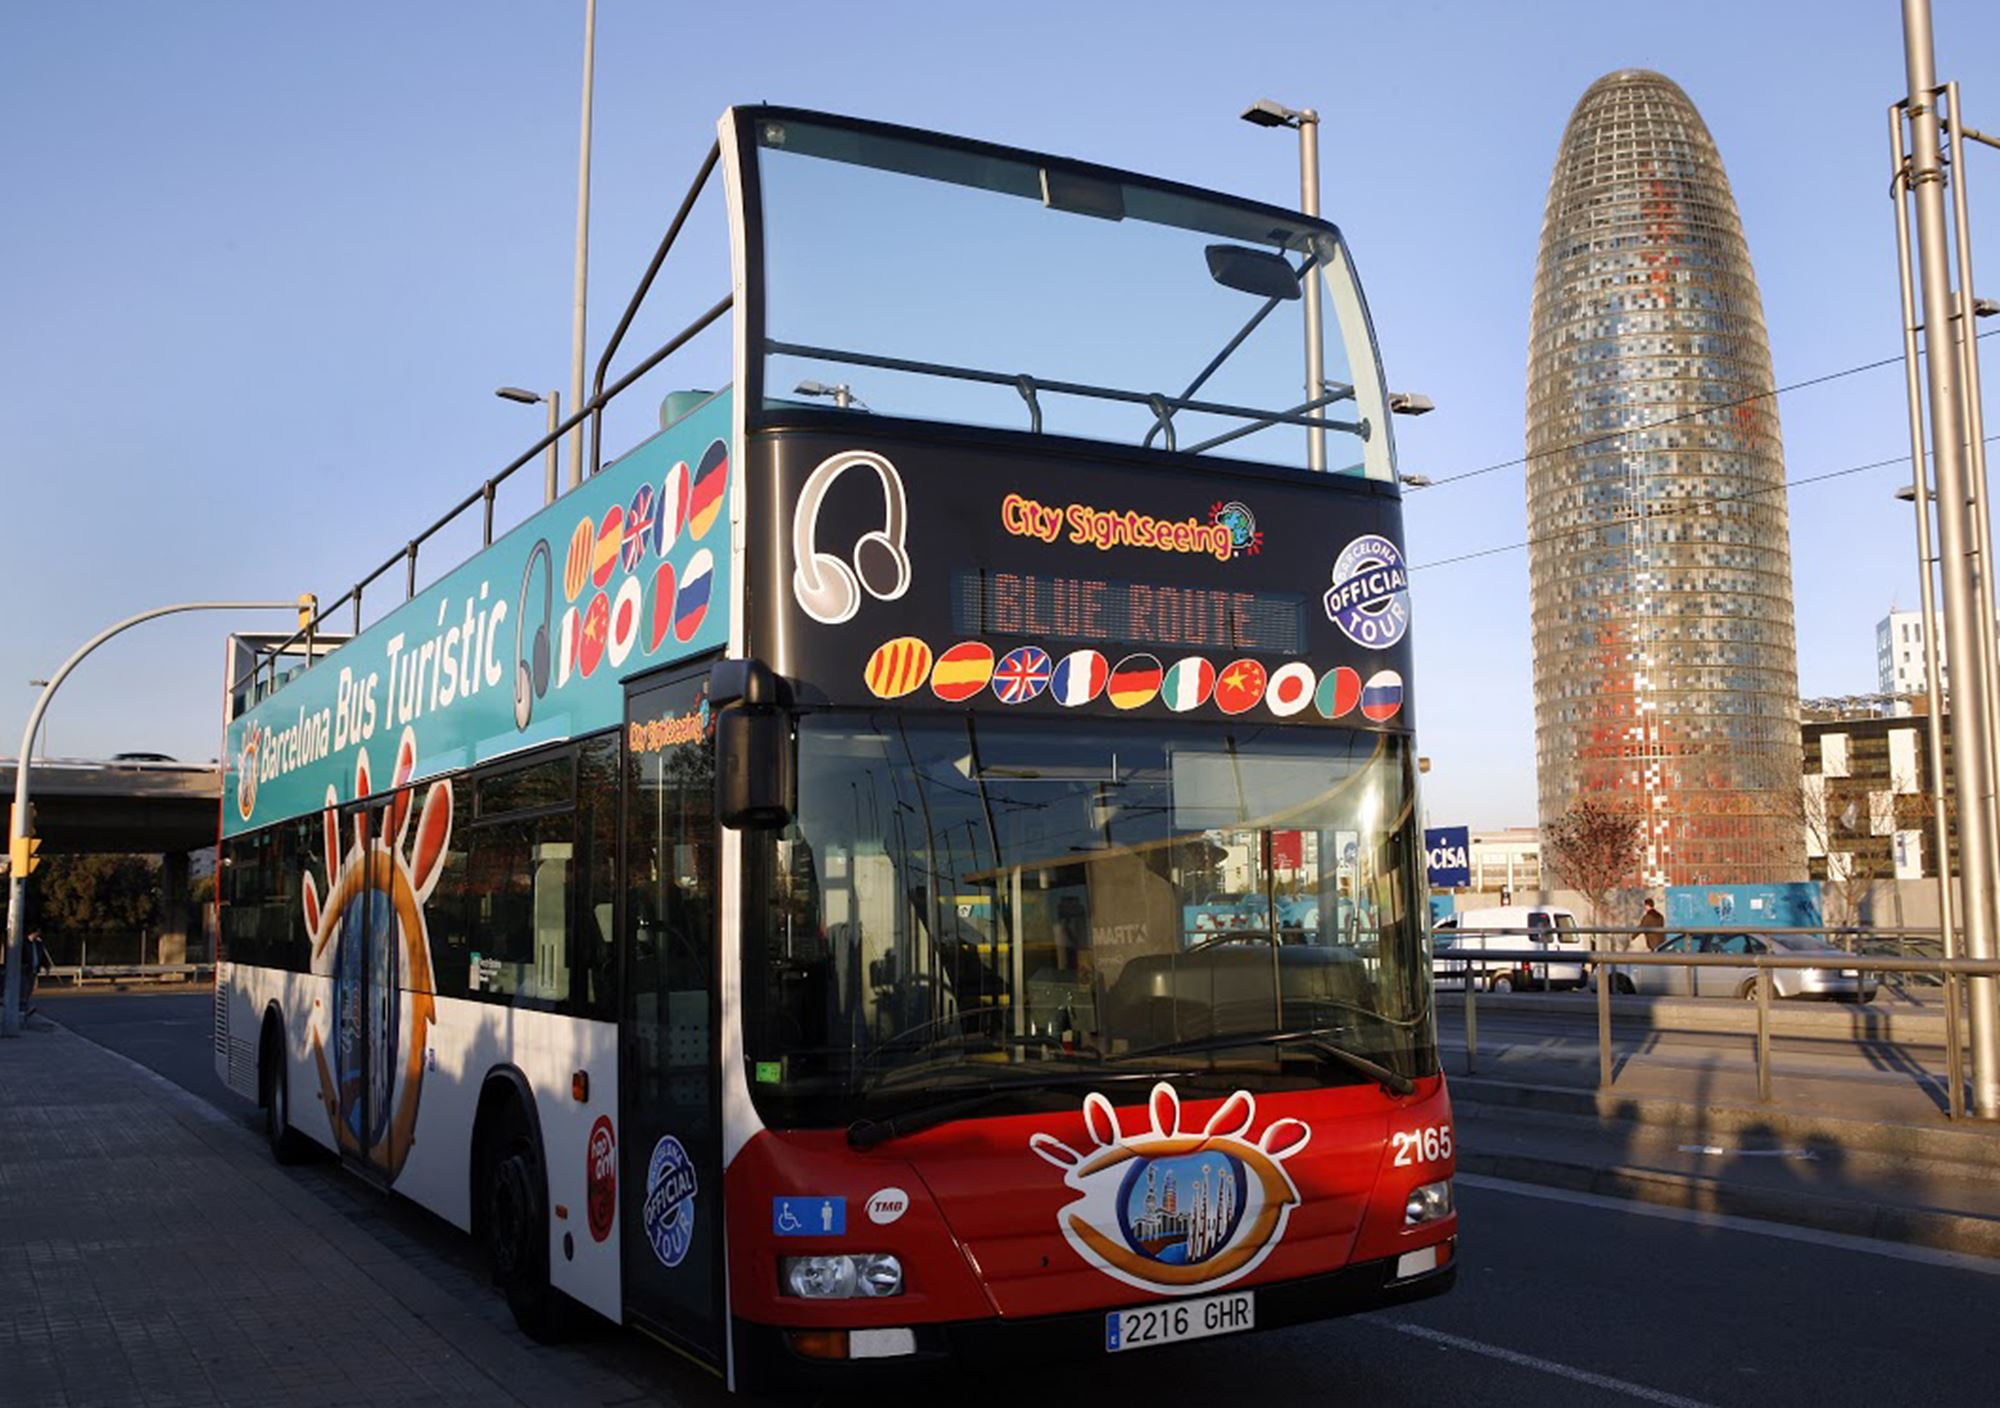 booking tickets visits tours online Tourist Bus City Sightseeing Barcelona